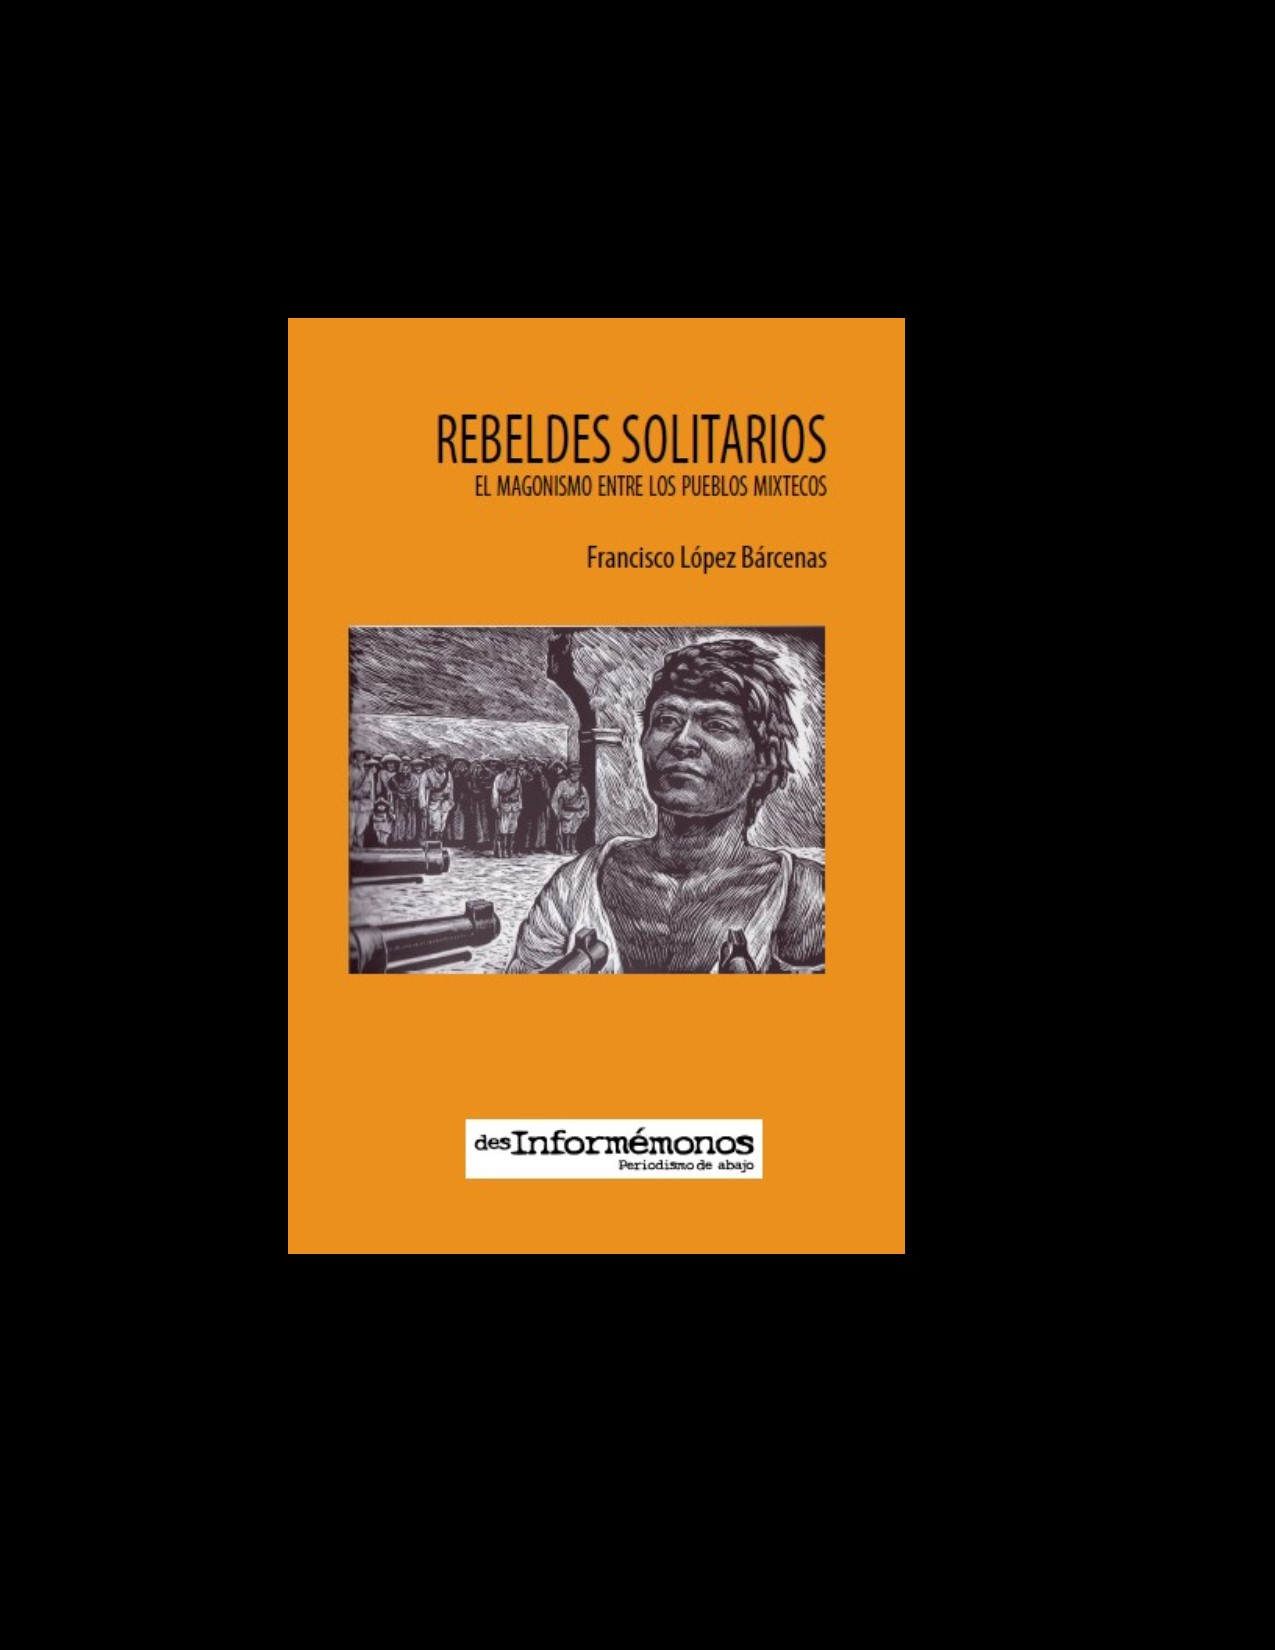 RebeldesYSolitarios1